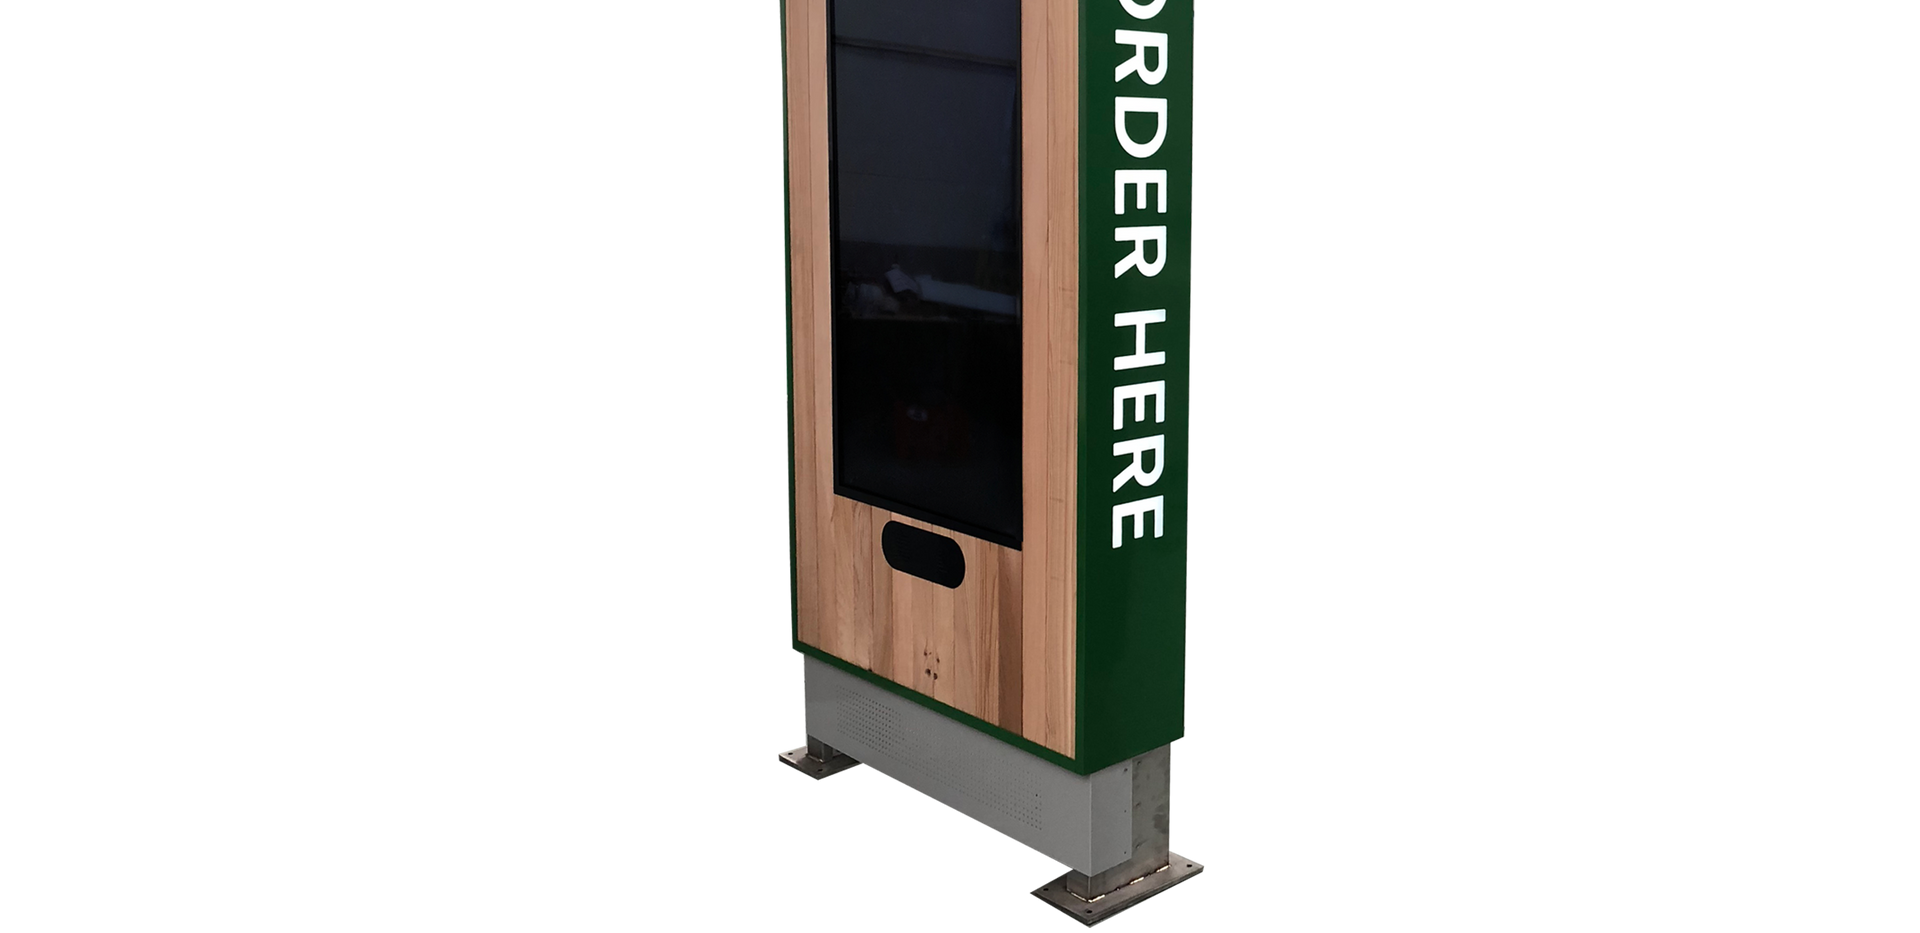 Custom drive-thru kiosk enclosure